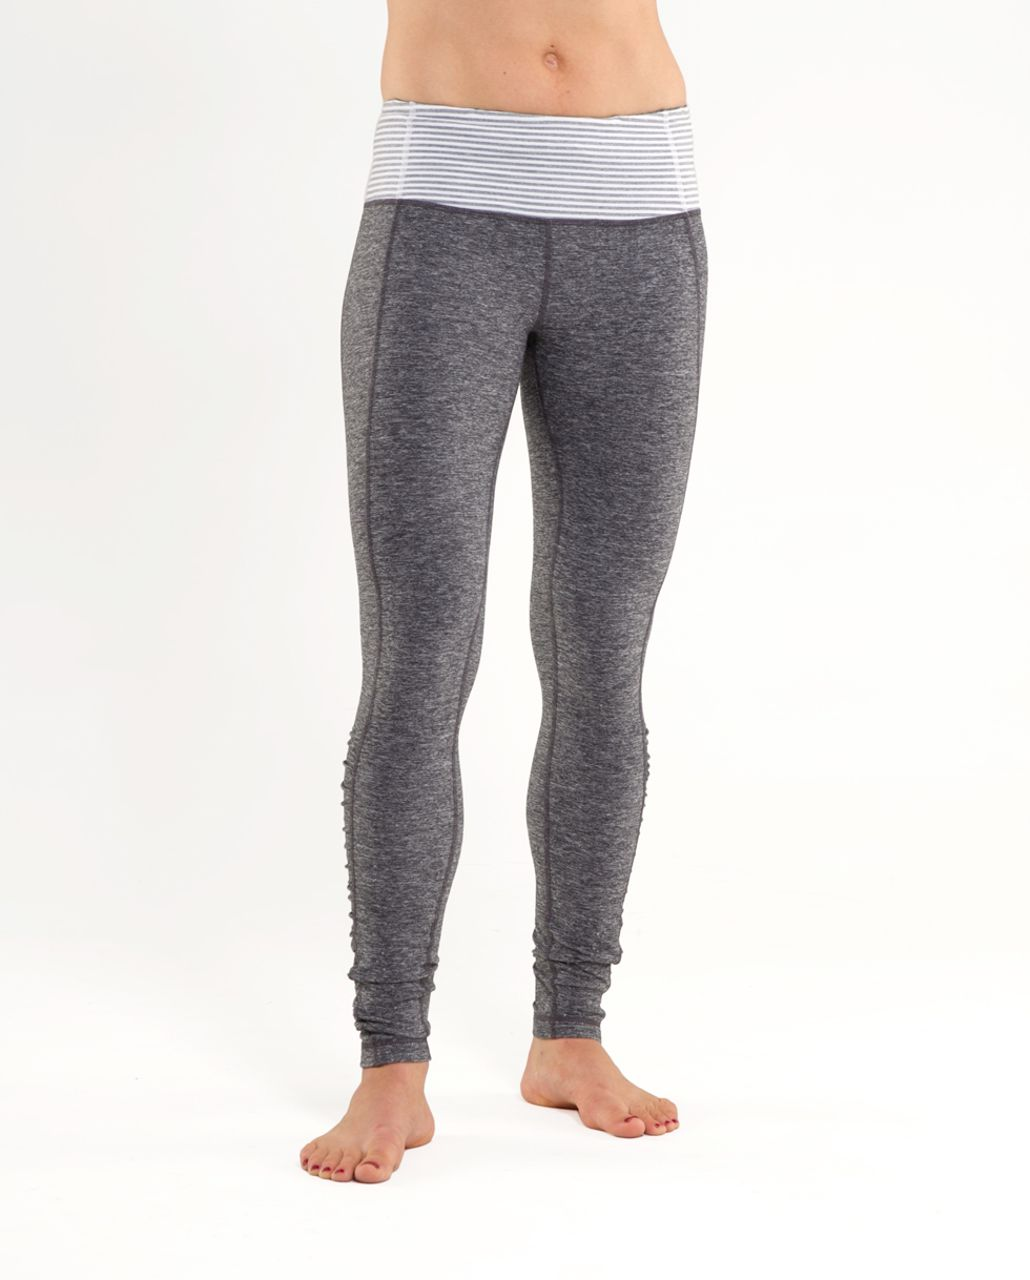 Lululemon Run:  Turn Around Tight - Heathered Deep Coal /  White Heathered Blurred Grey Classic Stripe